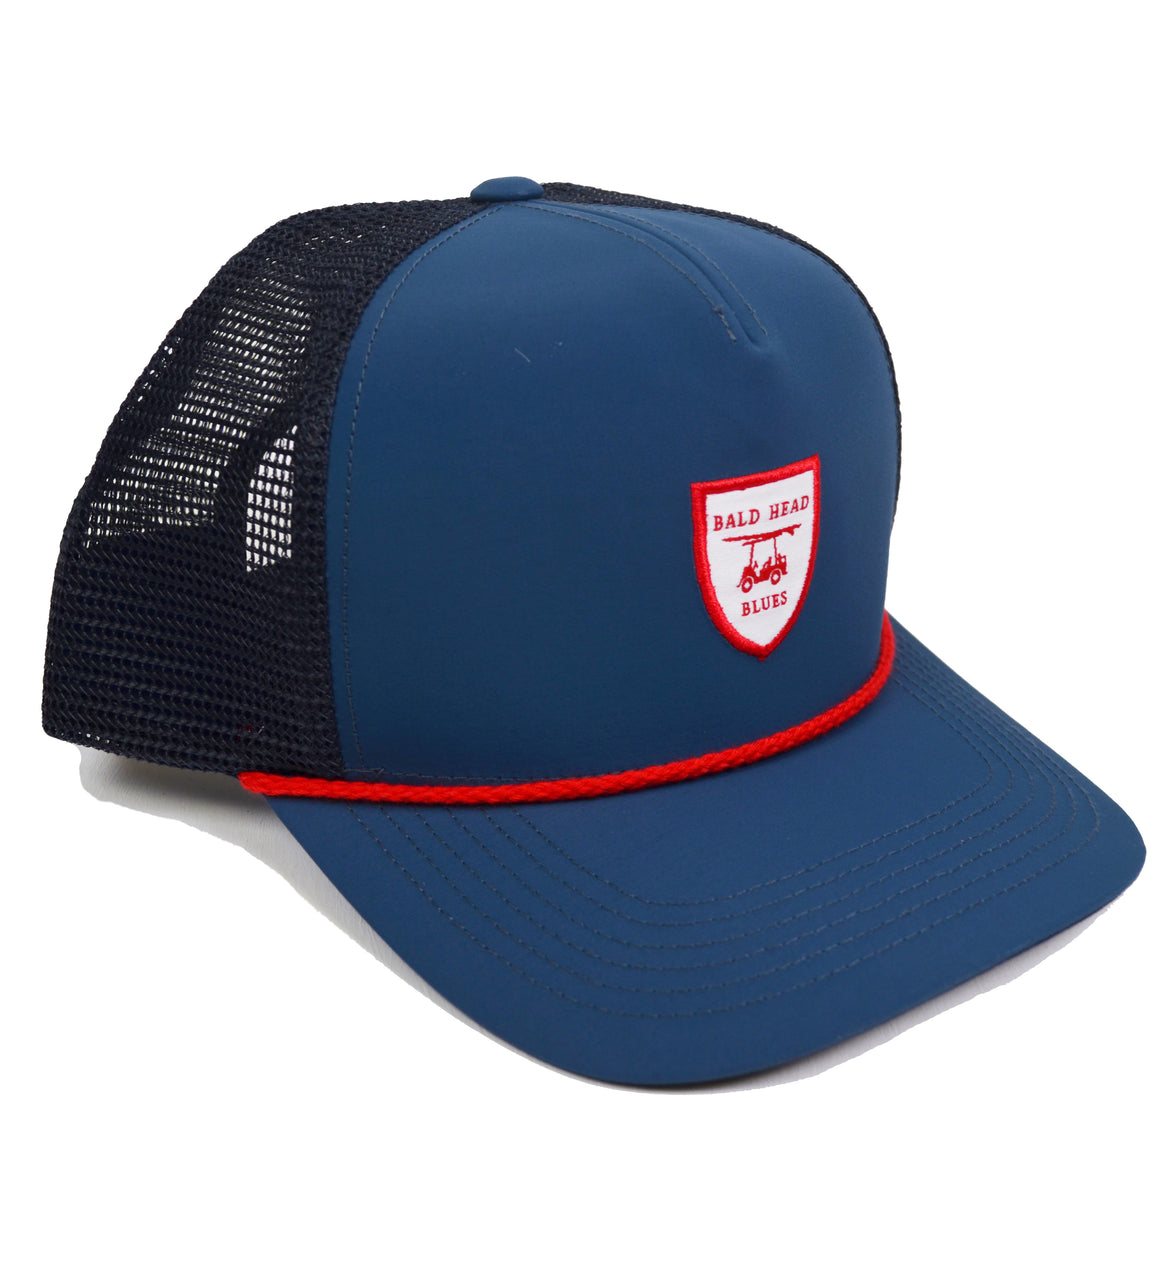 NEW Performance Trucker Hat - Navy